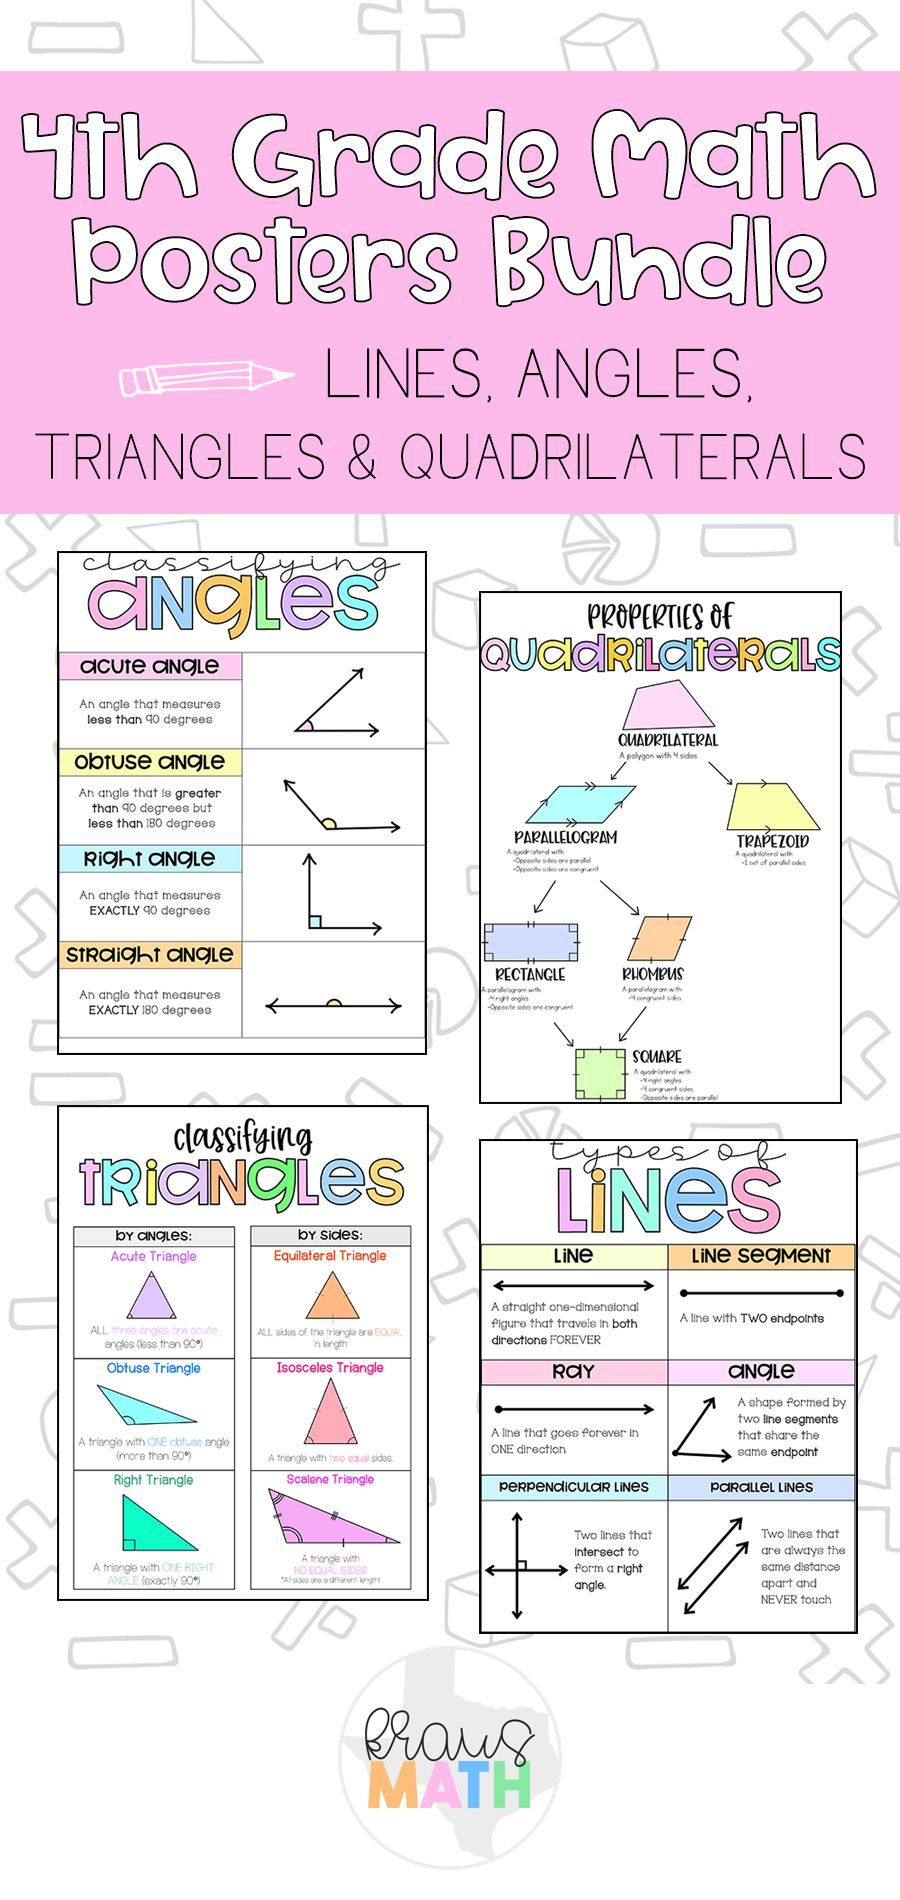 4th Grade Math Posters Bundle 4th Grade Math Posters Bundle U00a0 Posters Included Ttypes Of Lines Tclassifying An Math Poster 4th Grade Math Math Charts